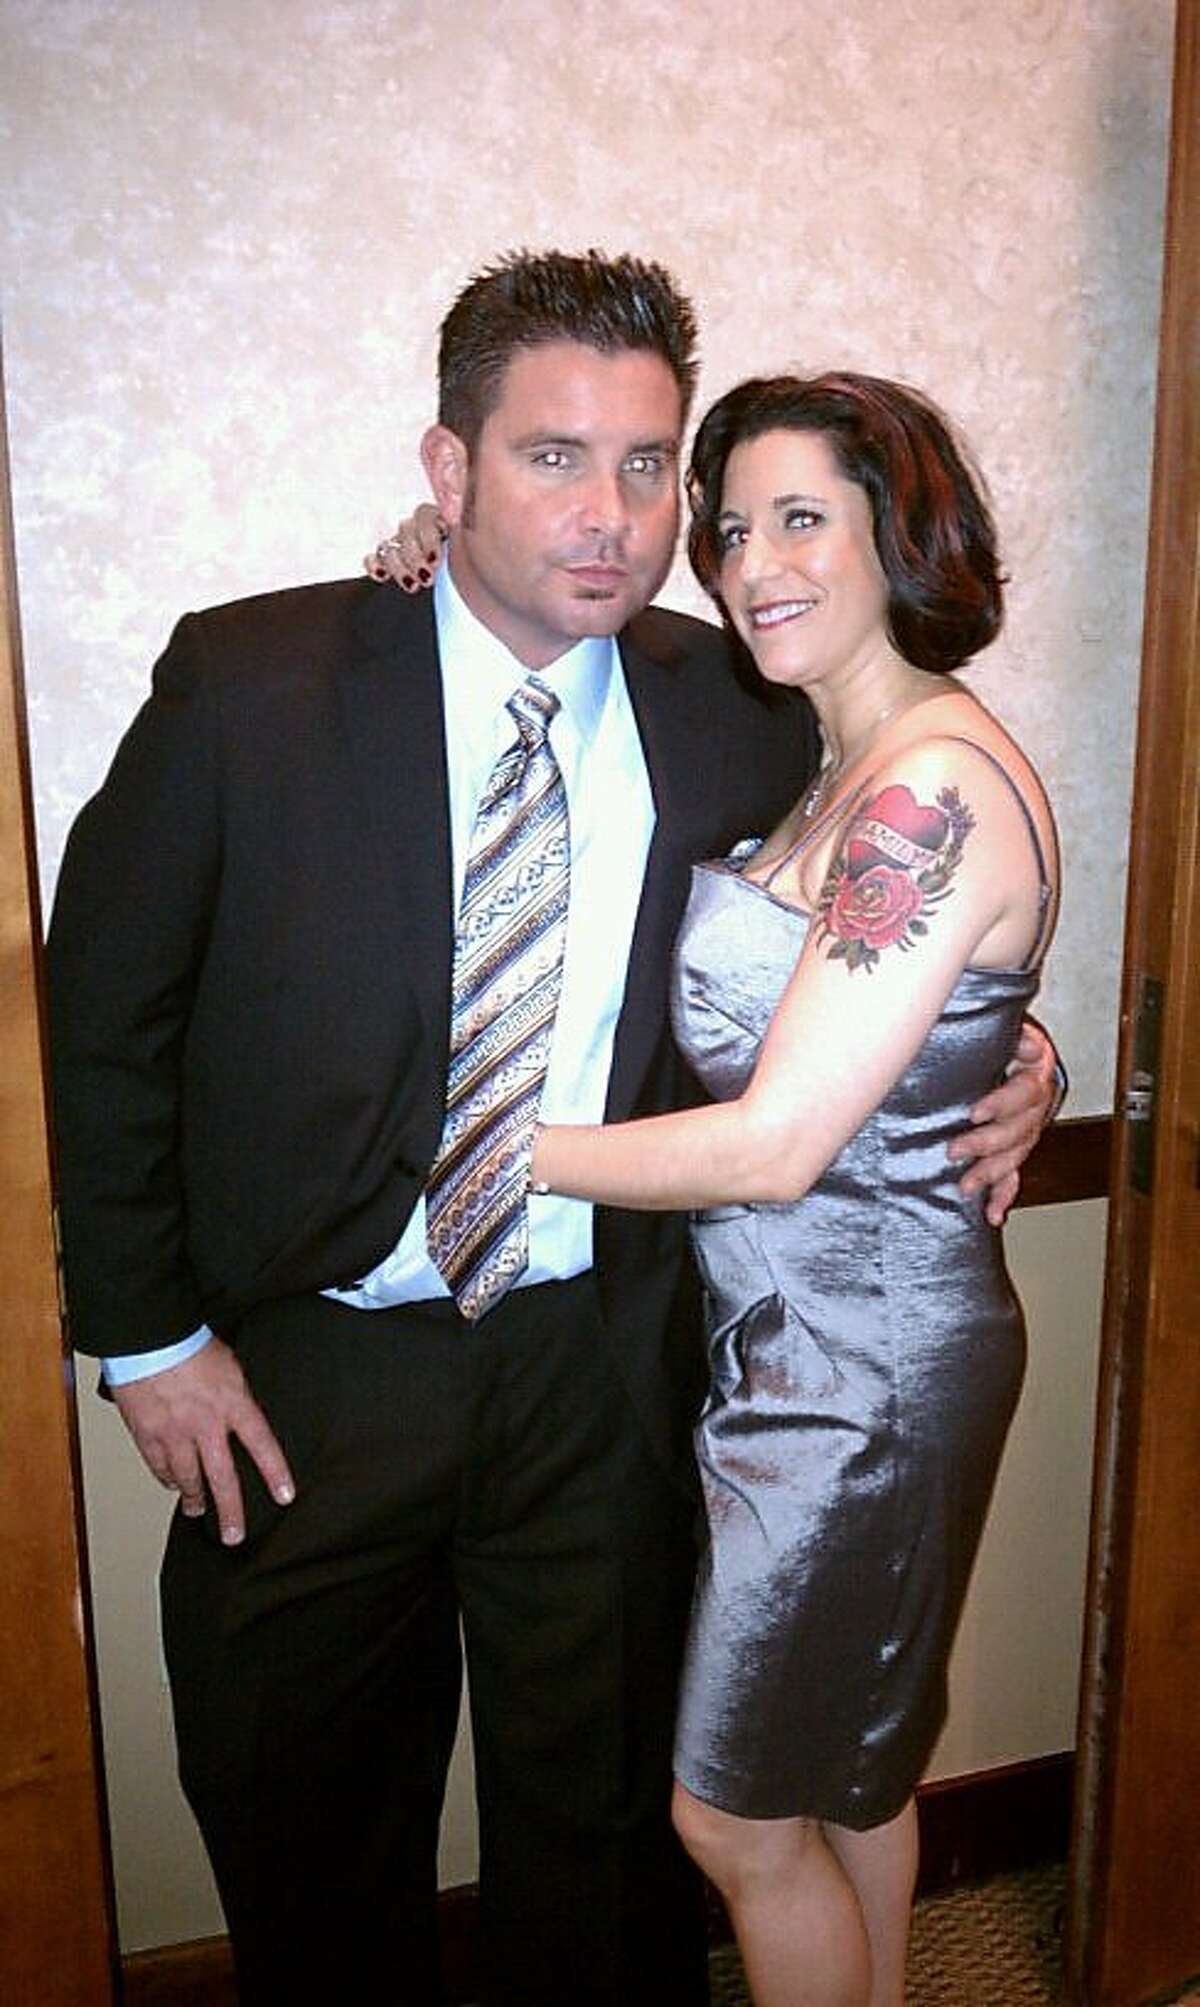 Bryan Stow of Santa Cruz was critically injured following a Giants-Dodgers game in Los Angeles March 31.